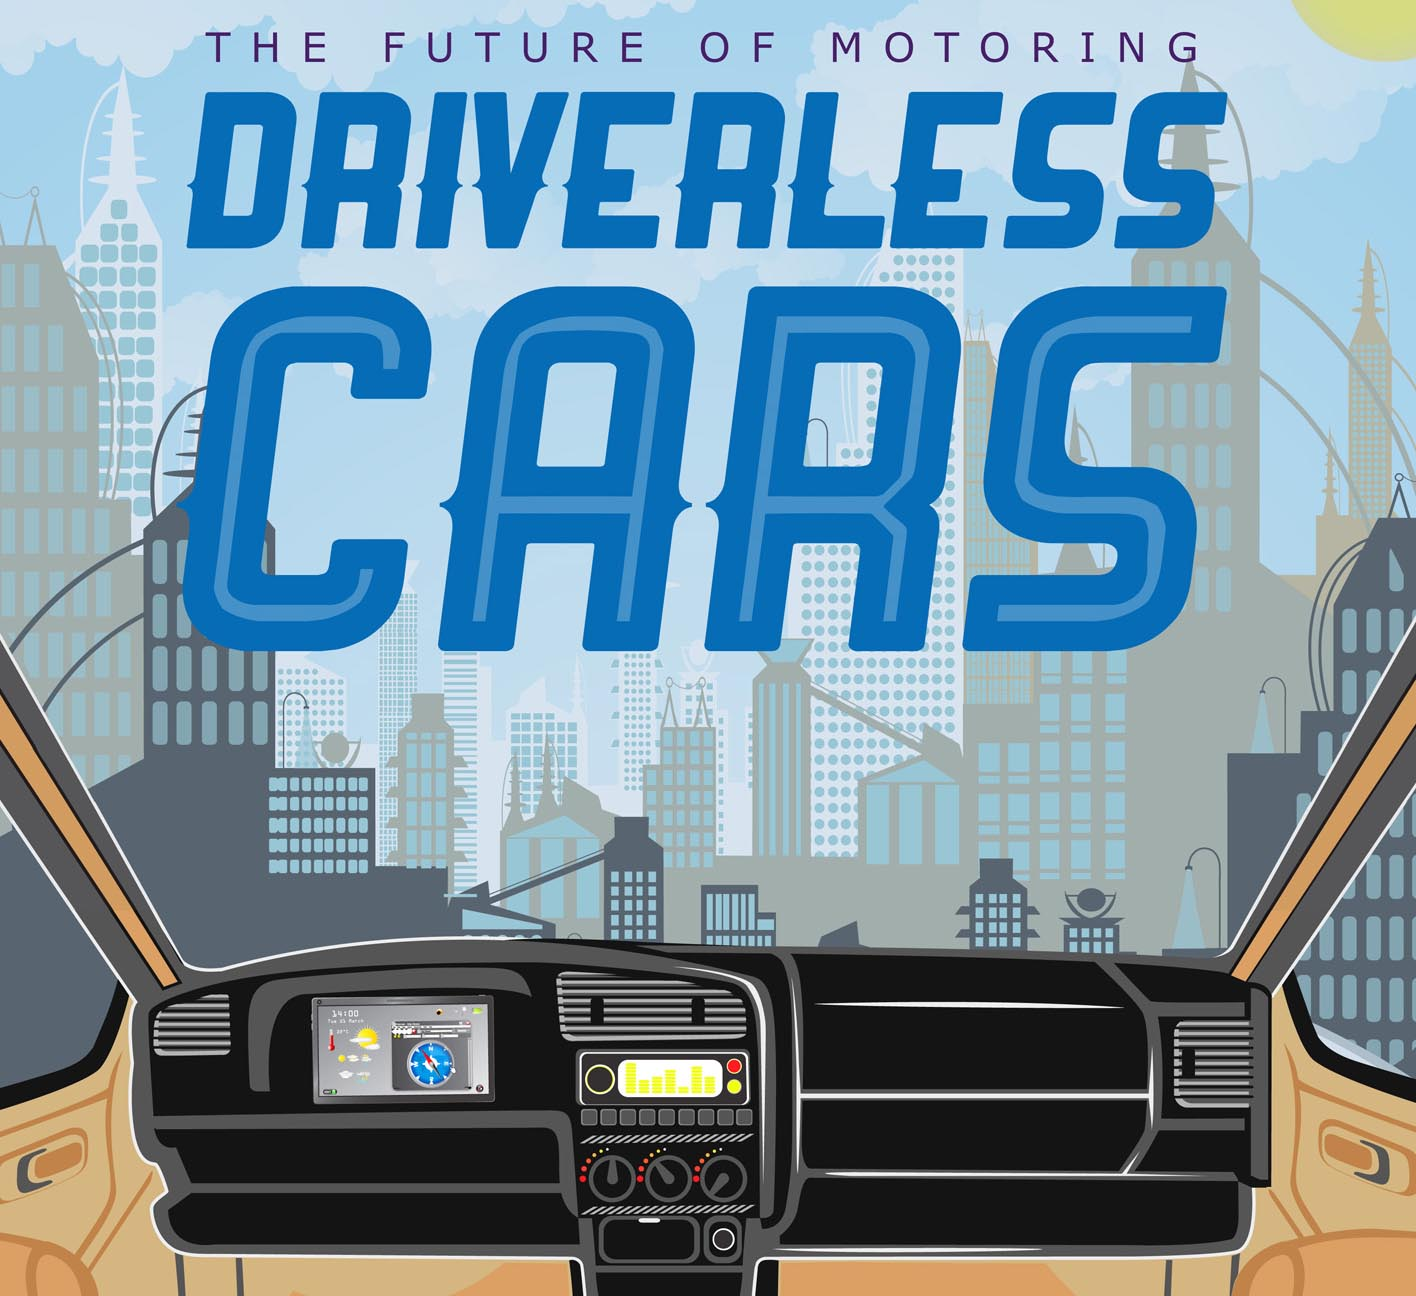 Guest Post: MoneySuperMarket.com: Driverless Cars, The Future Of Motoring